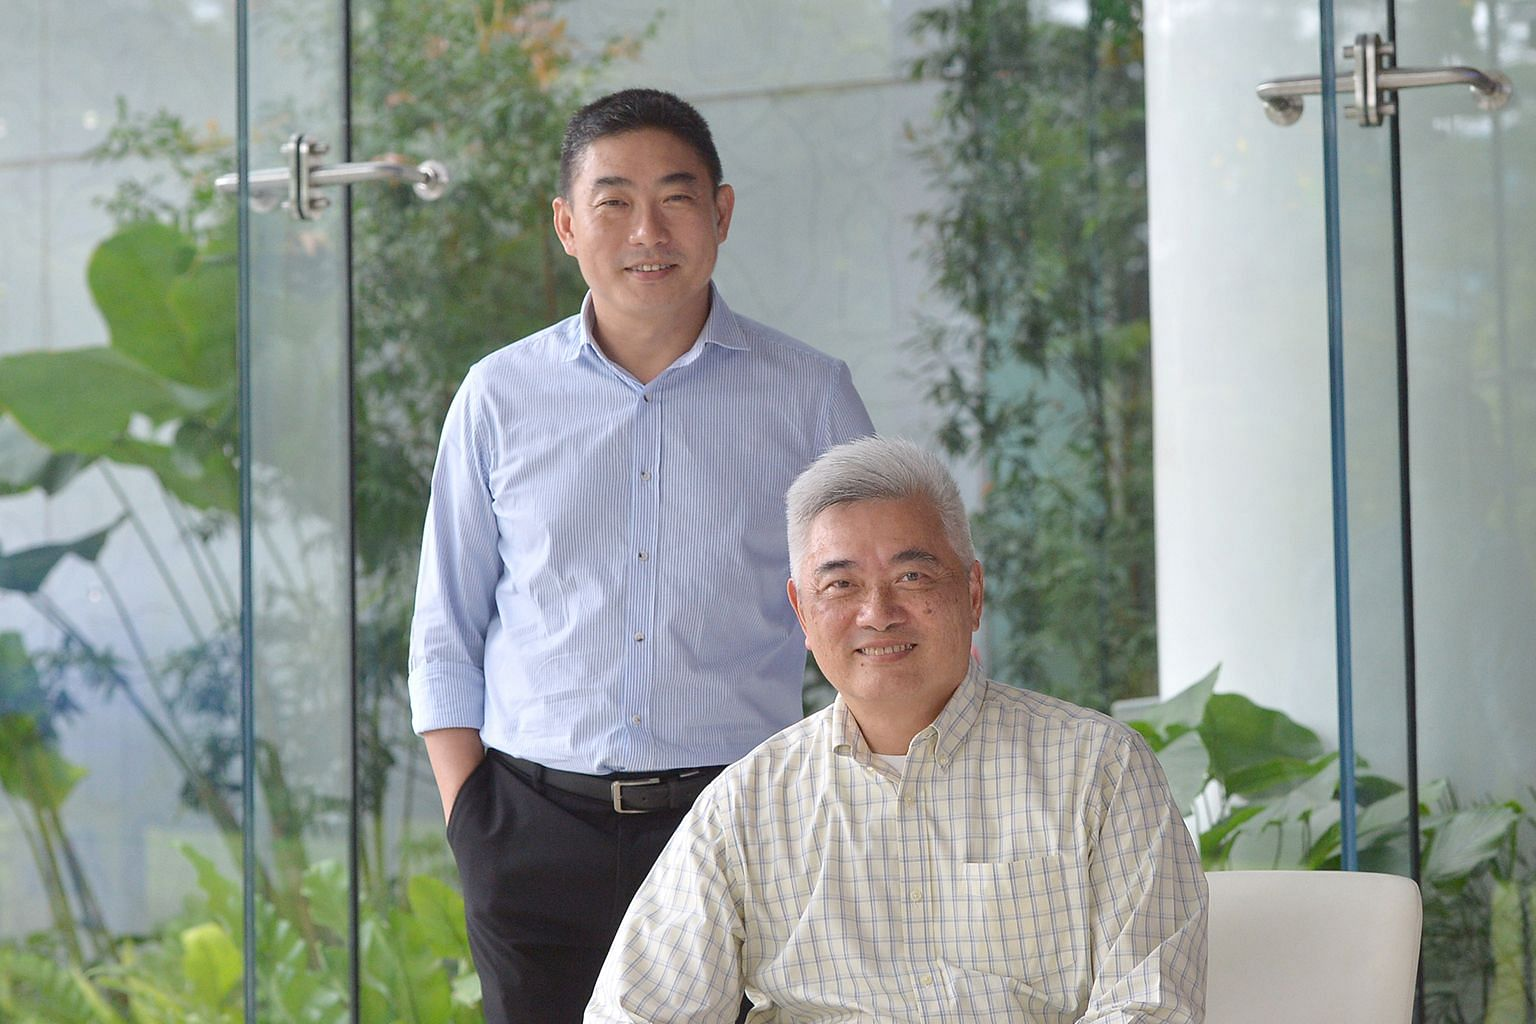 GWIA's Mr Lee (left) and P&G's Mr Kaw. The partnership between the SME and global giant was shortlisted for the Most Transformational Collaboration prize at last year's SICC Awards.